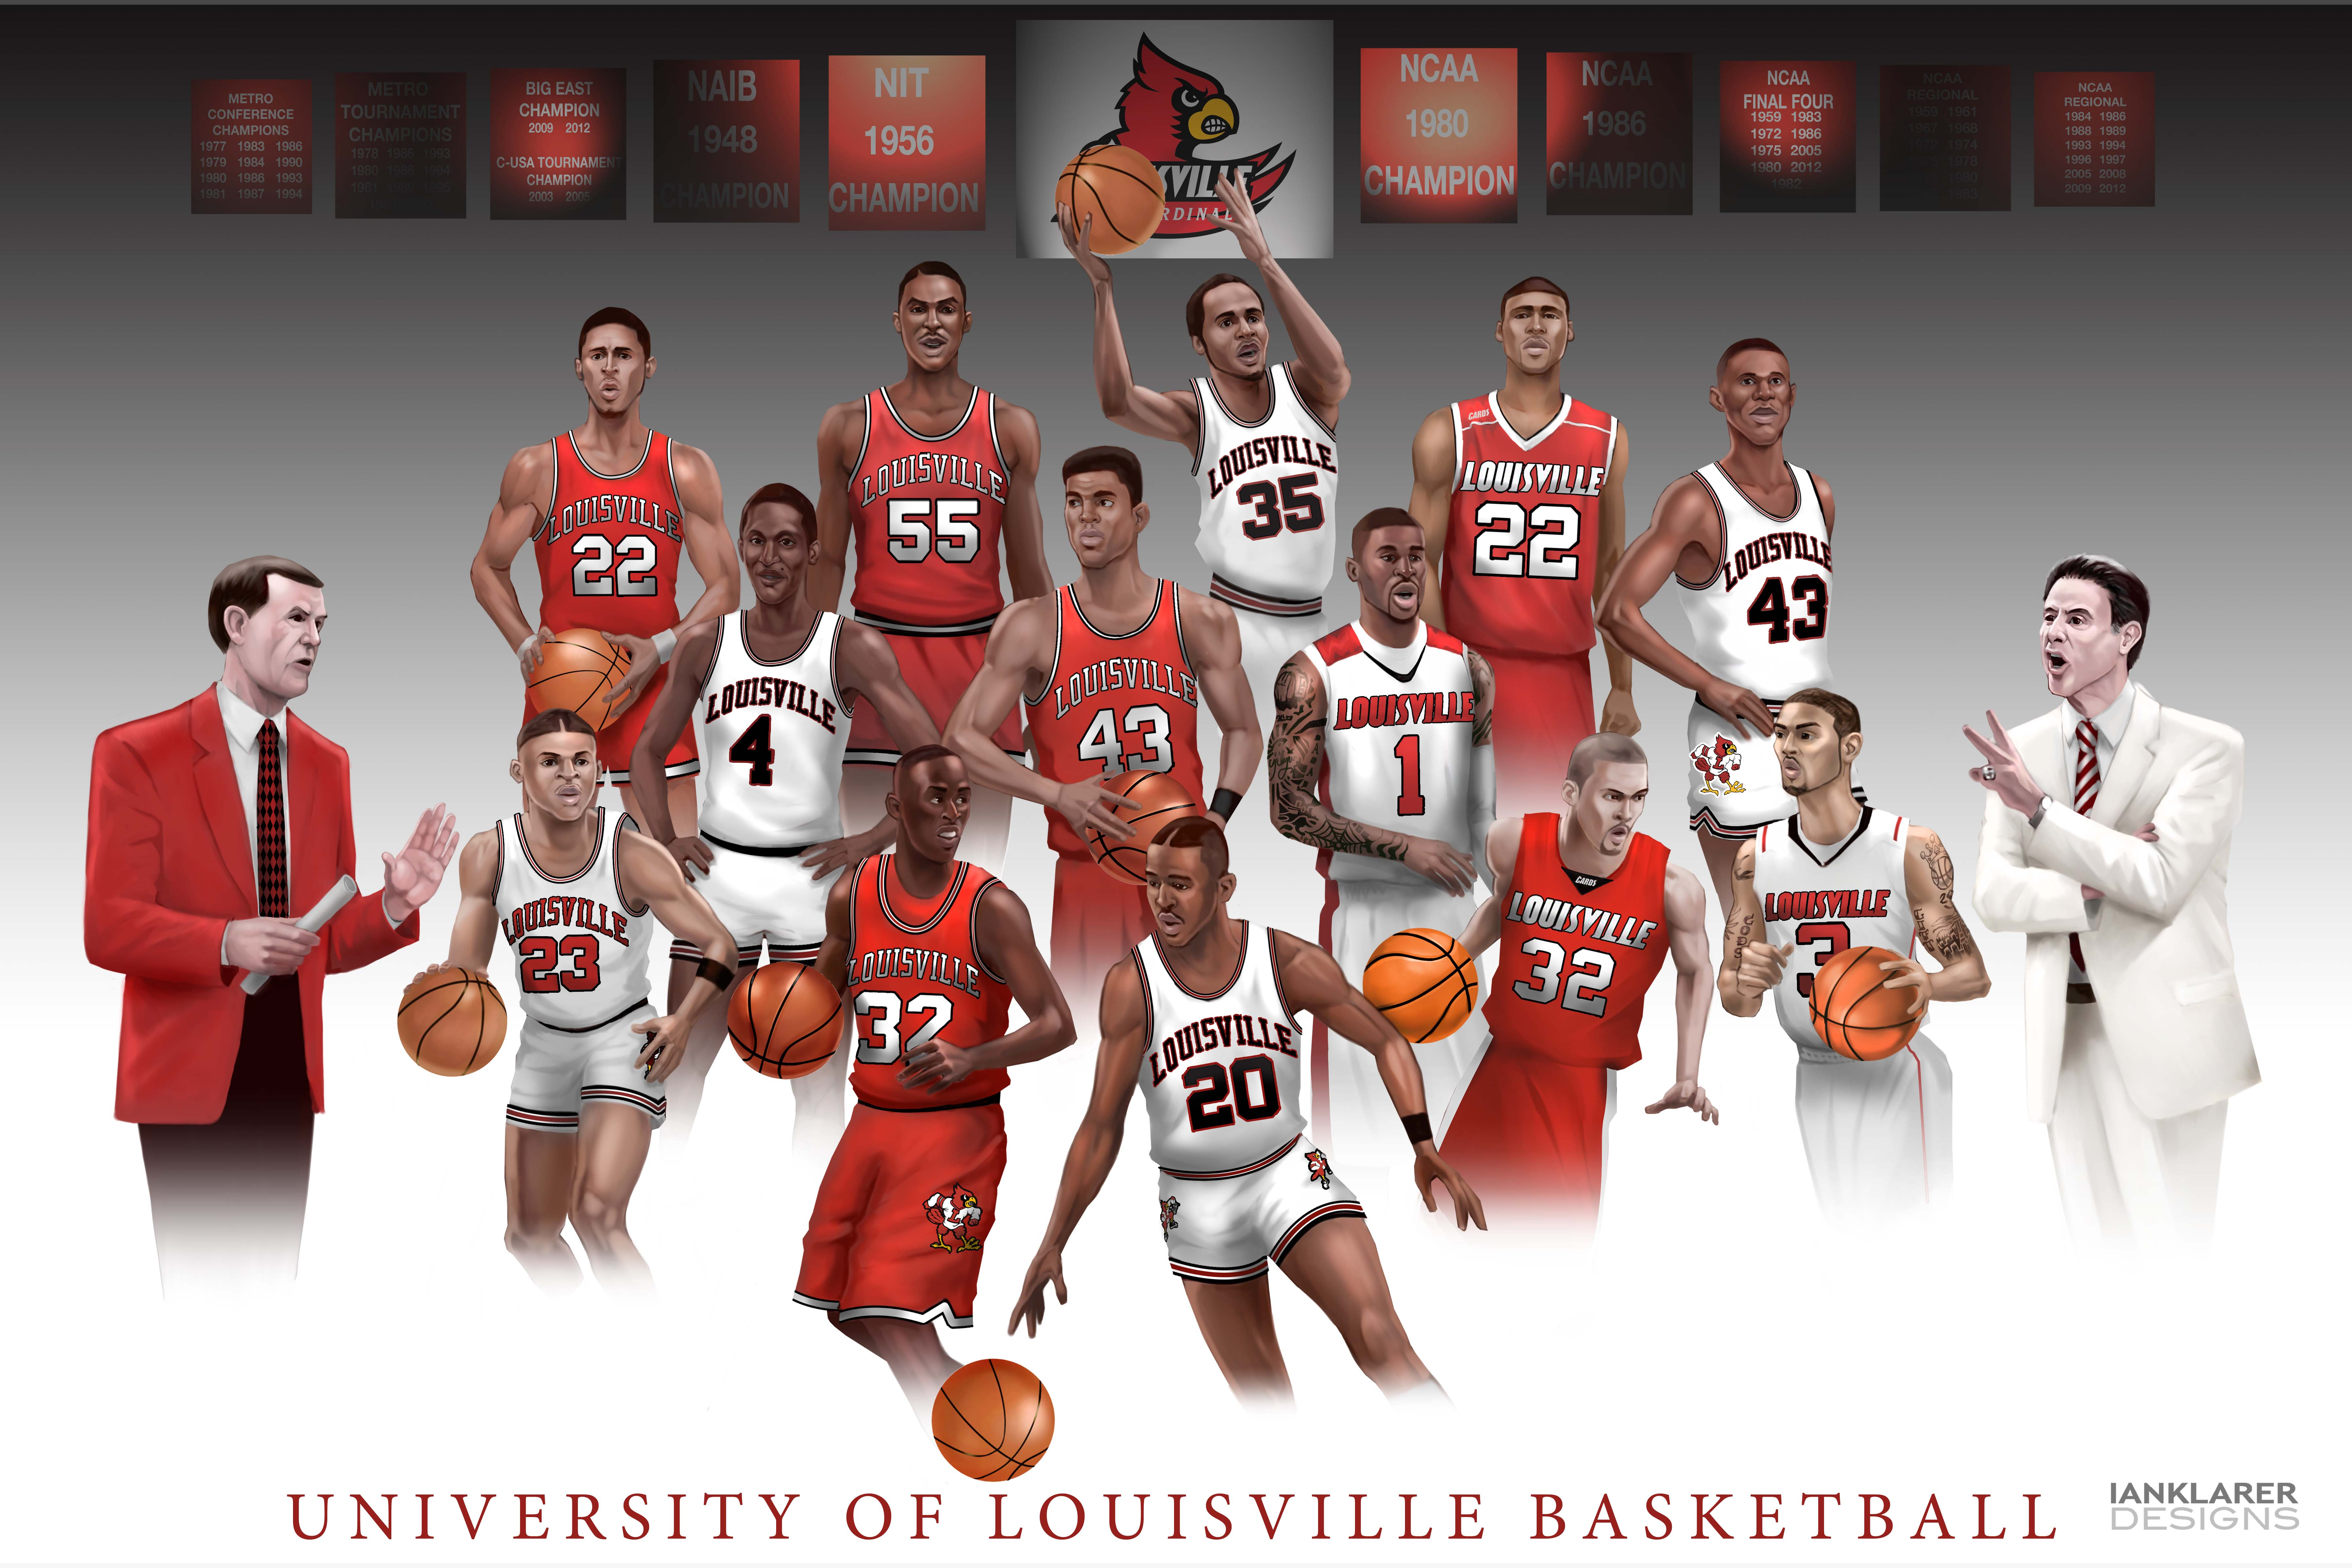 Wallpaper Louisville The Art Of Ian Klarer U Of L Basketball Wallpaper Chillville502